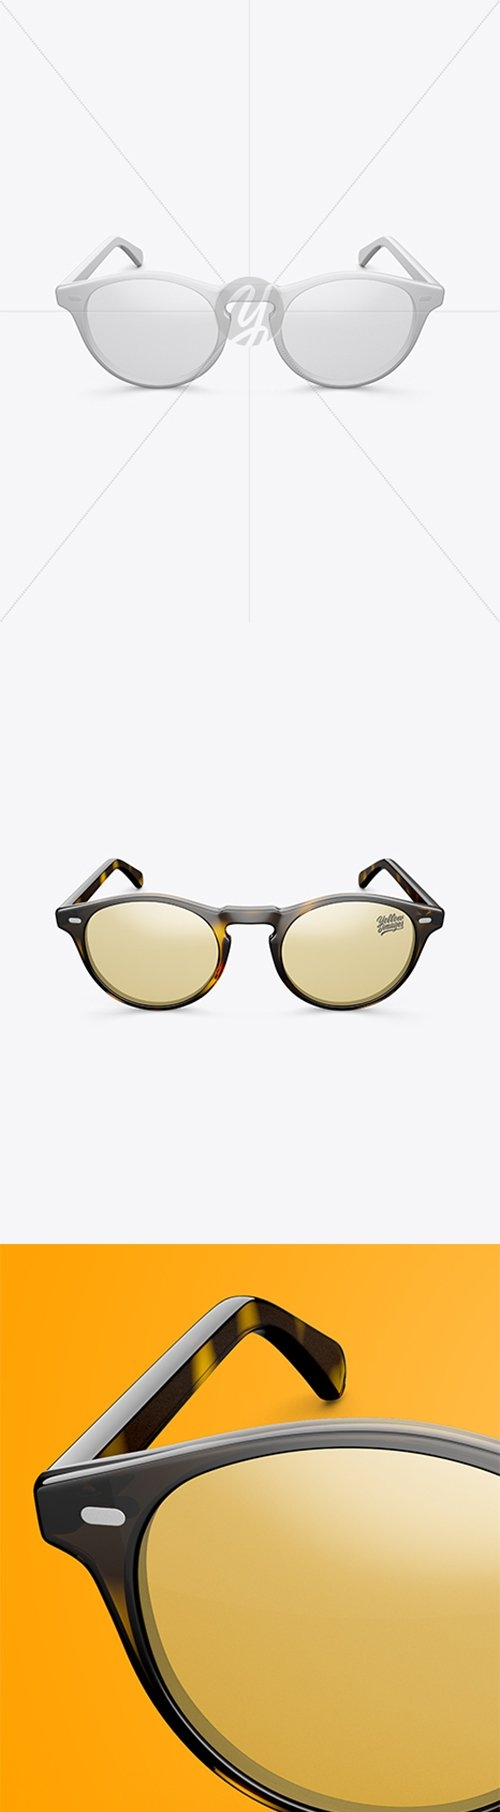 Sunglasses Mockup - Front View (High Angle Shot) 27660